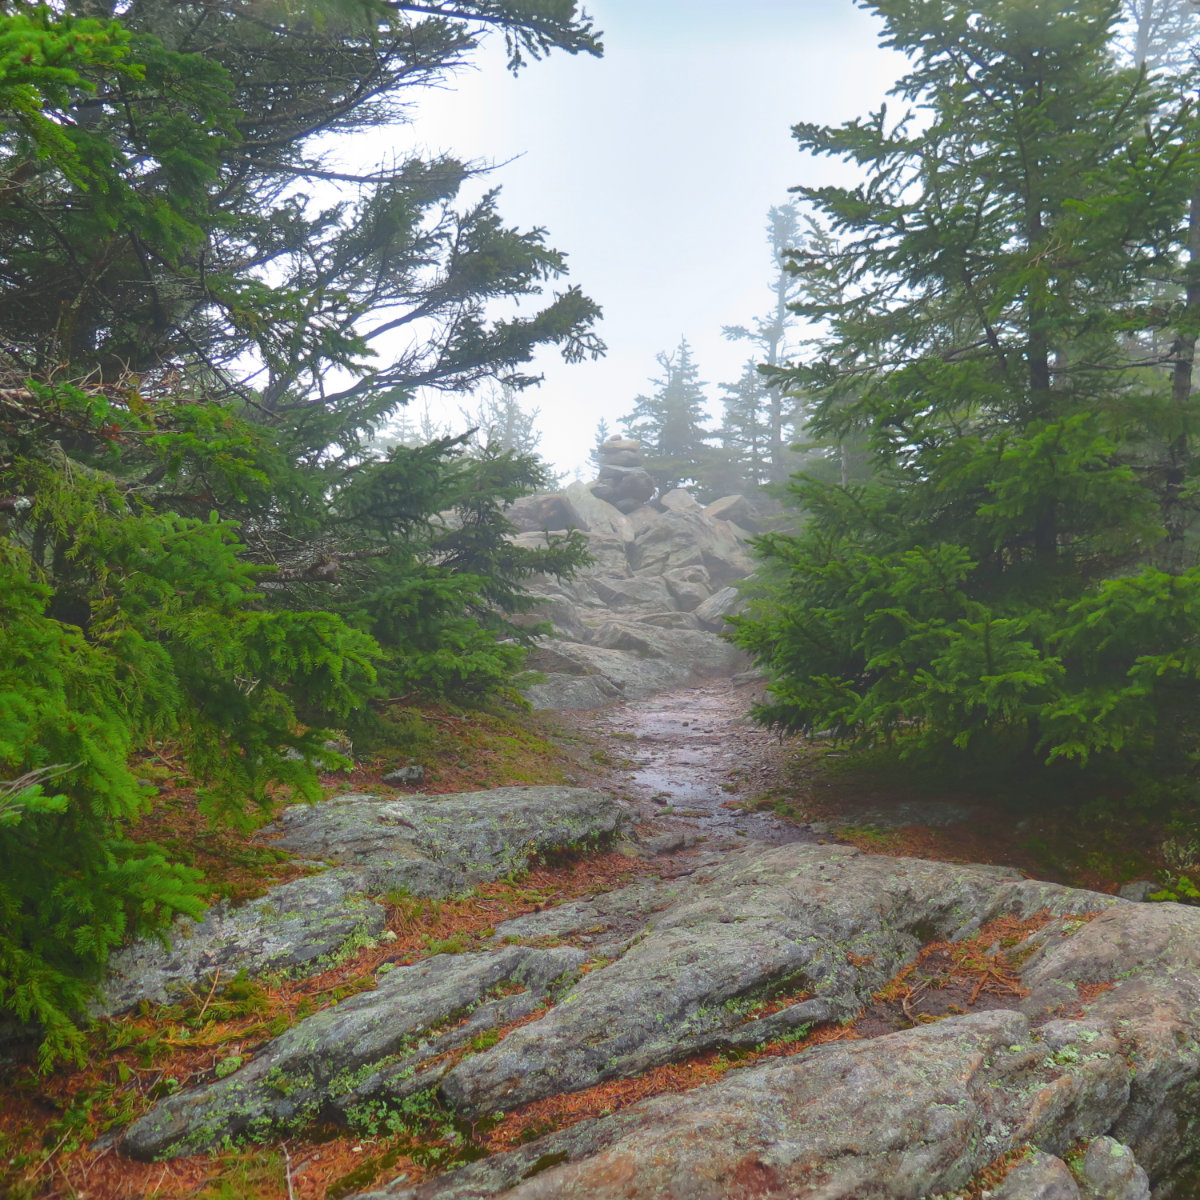 Summit of Sandwich Mountain, White Mountain National Forest, New Hampshire.